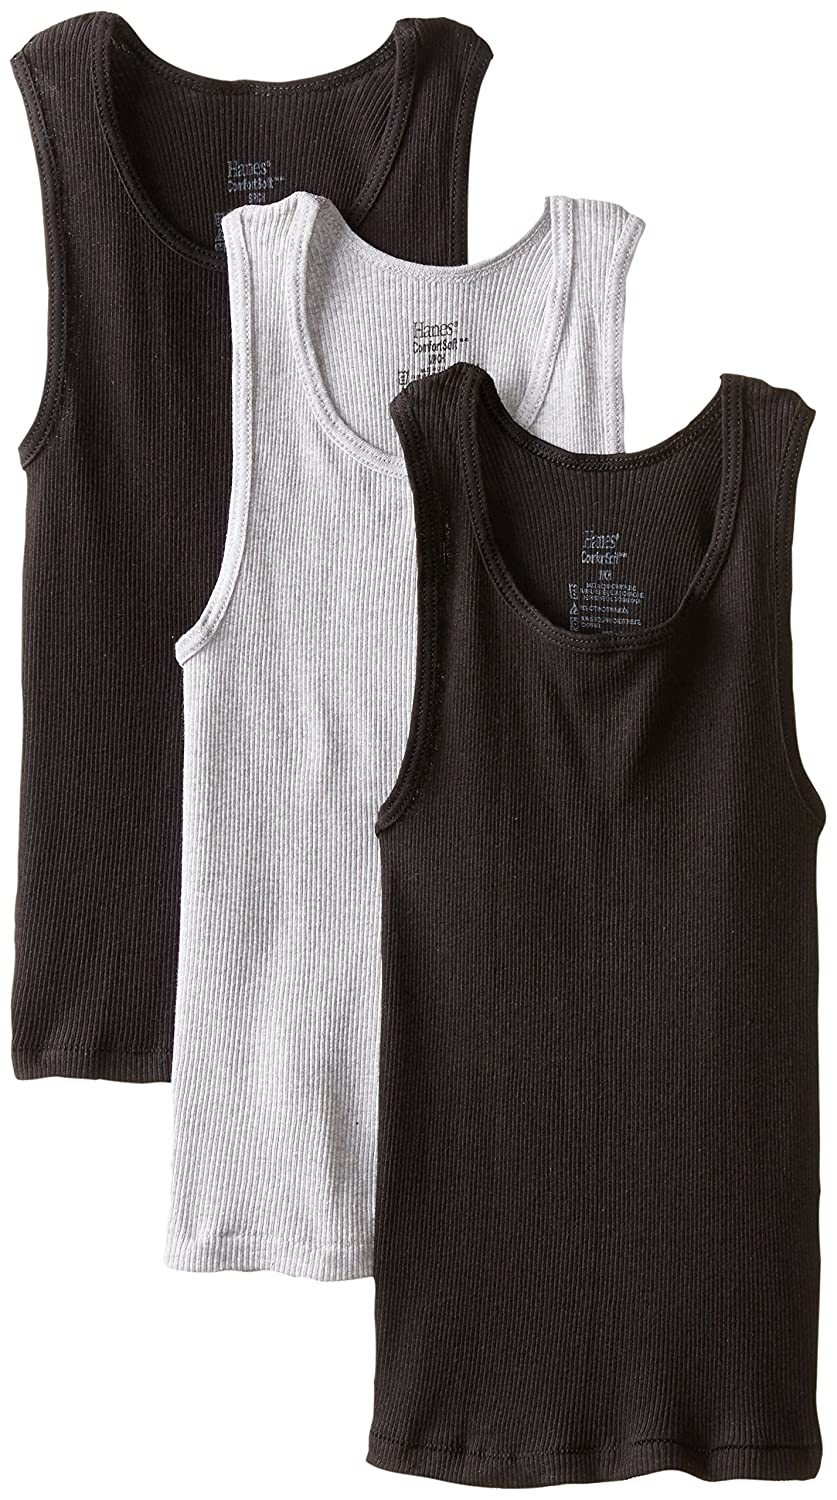 Hanes boys Big Boys Dyed Tank Hanes Big Boys' Dyed Tank Assorted Medium Hanes Boys Red Label Tops